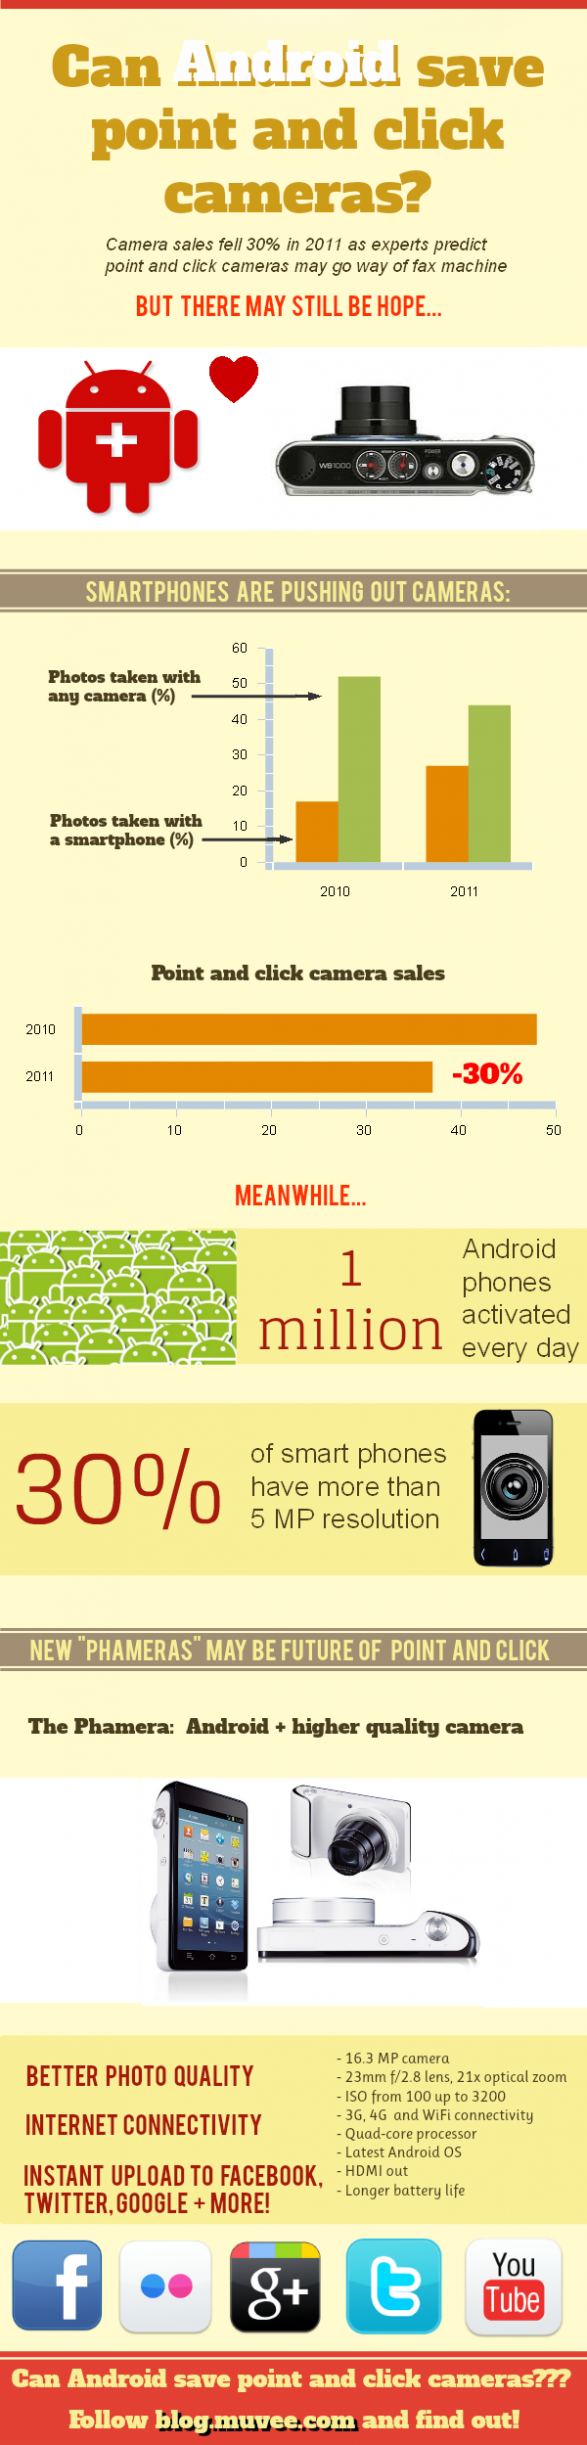 Can Android save point-and-click cameras?